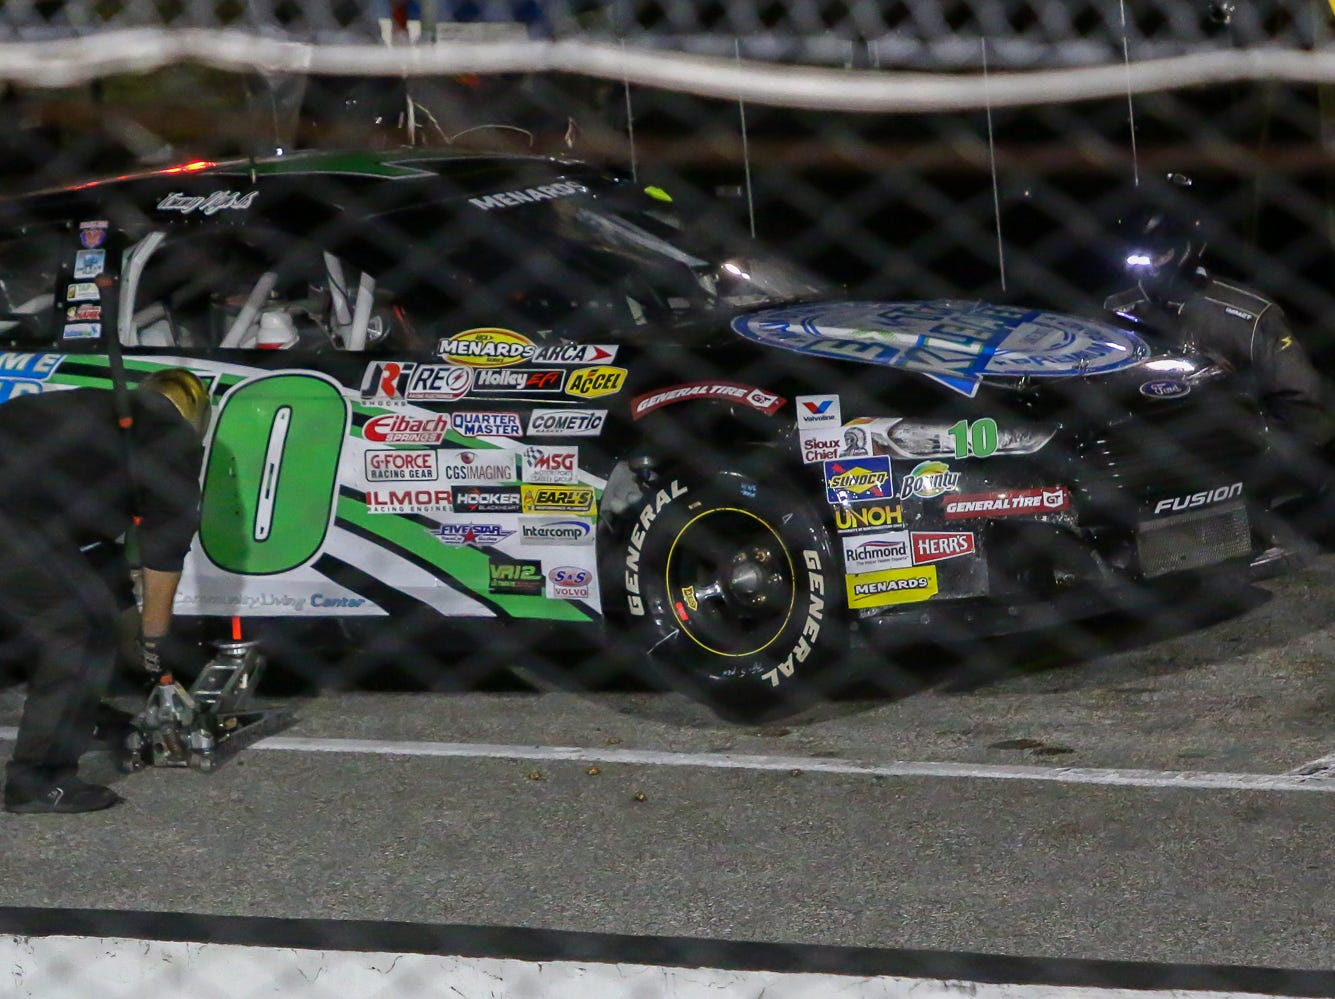 Crew members work on the car of Tommy Vigh Jr. (10) during a pit stop in the ARCA Pensacola 200 race presented by Inspectra Thermal Solutions on Saturday, March 9, 2019, at Five Flags Speedway. Michael Self, of Salt Lake City, won the race.